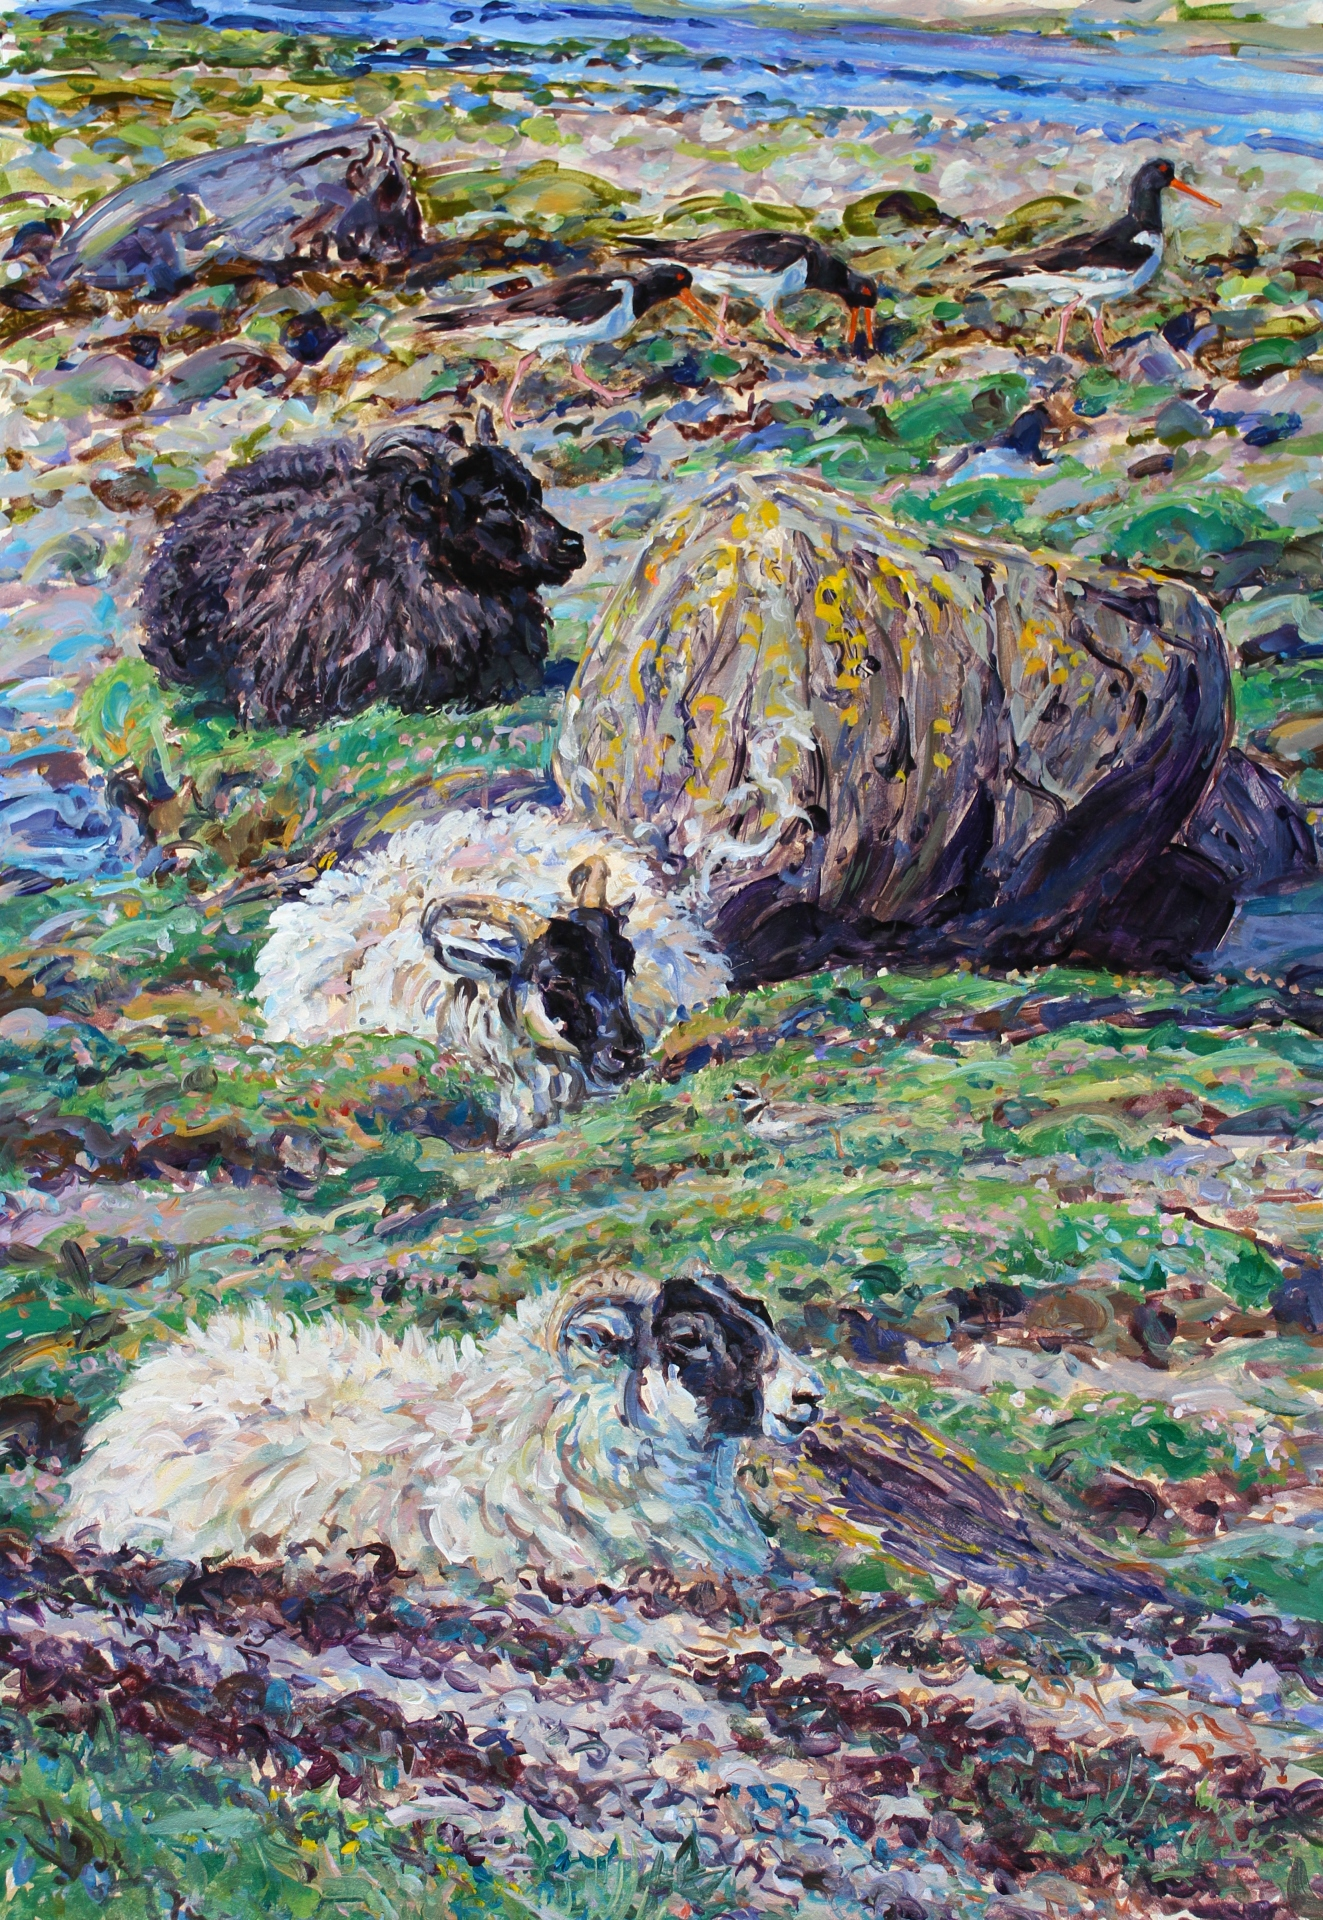 Shore sheep and Waders, Mull